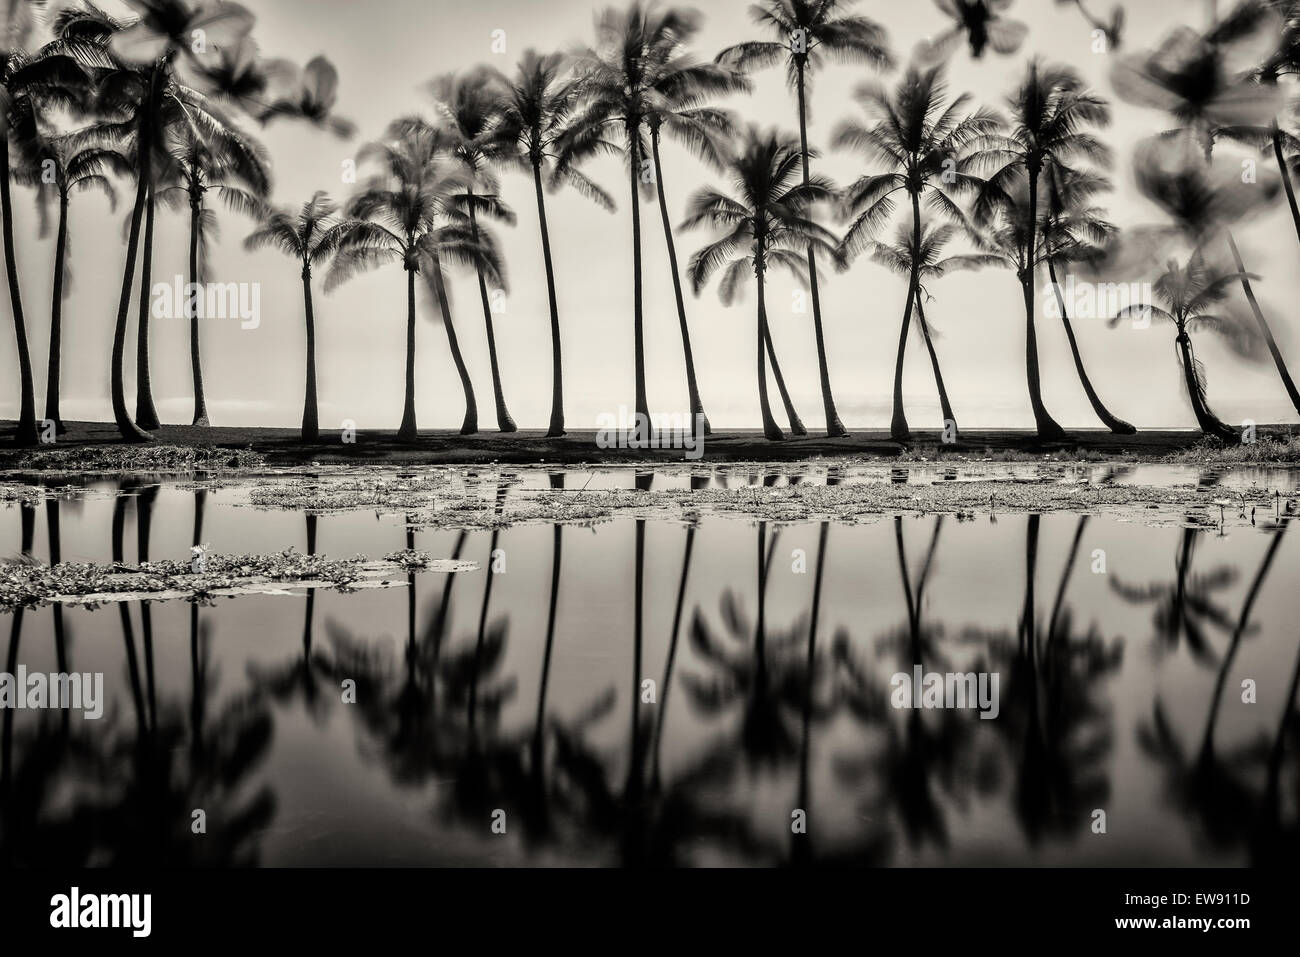 Pond reflecting palm trees. Black Sand Beach. Hawaii, The Big Island - Stock Image